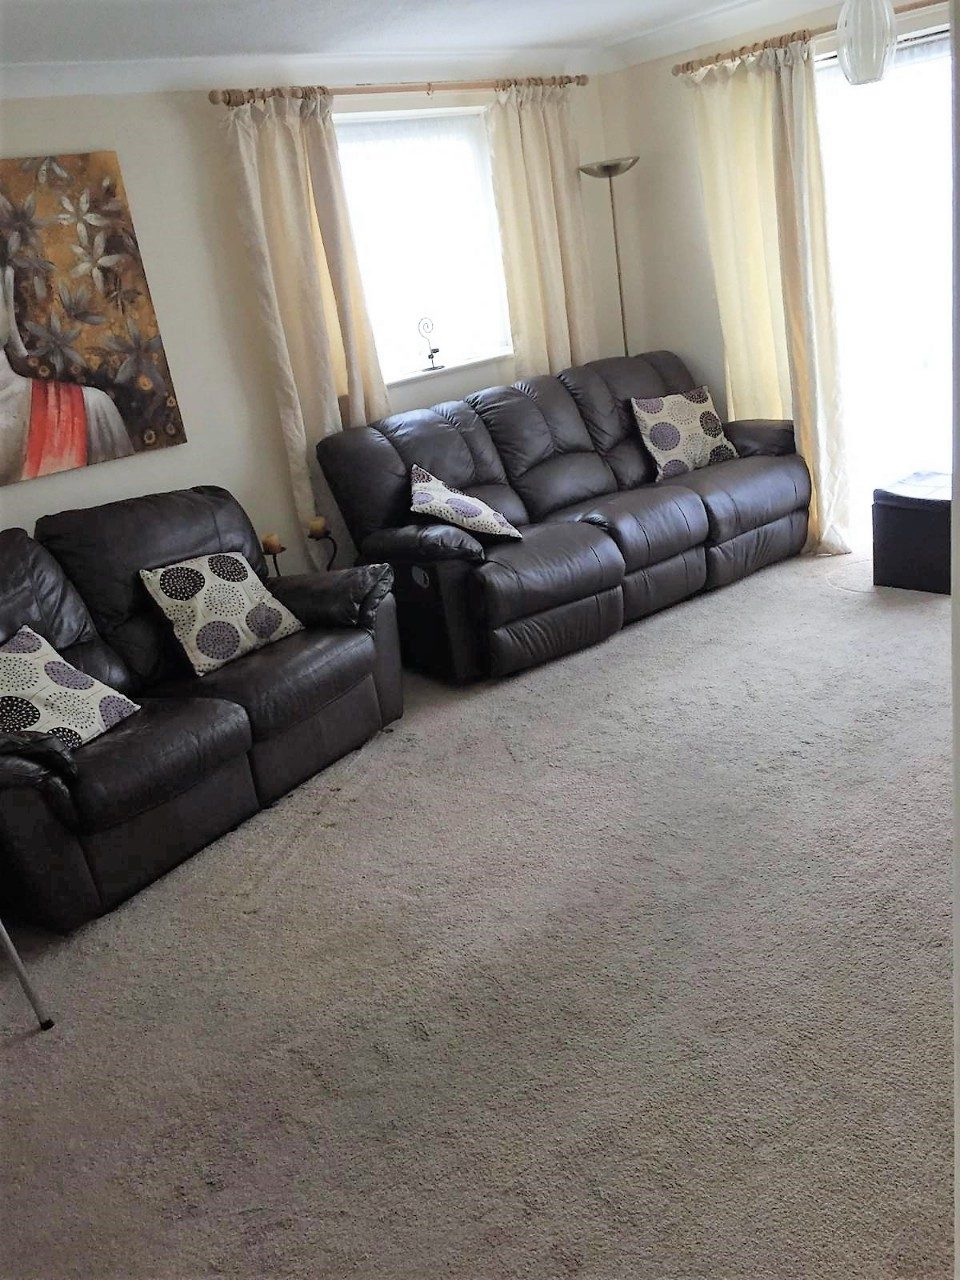 Furnished 1 Bedroom Apartment For Rent In Mandeville: Fully Furnished One Bedroom Flat To Rent In Gorleston